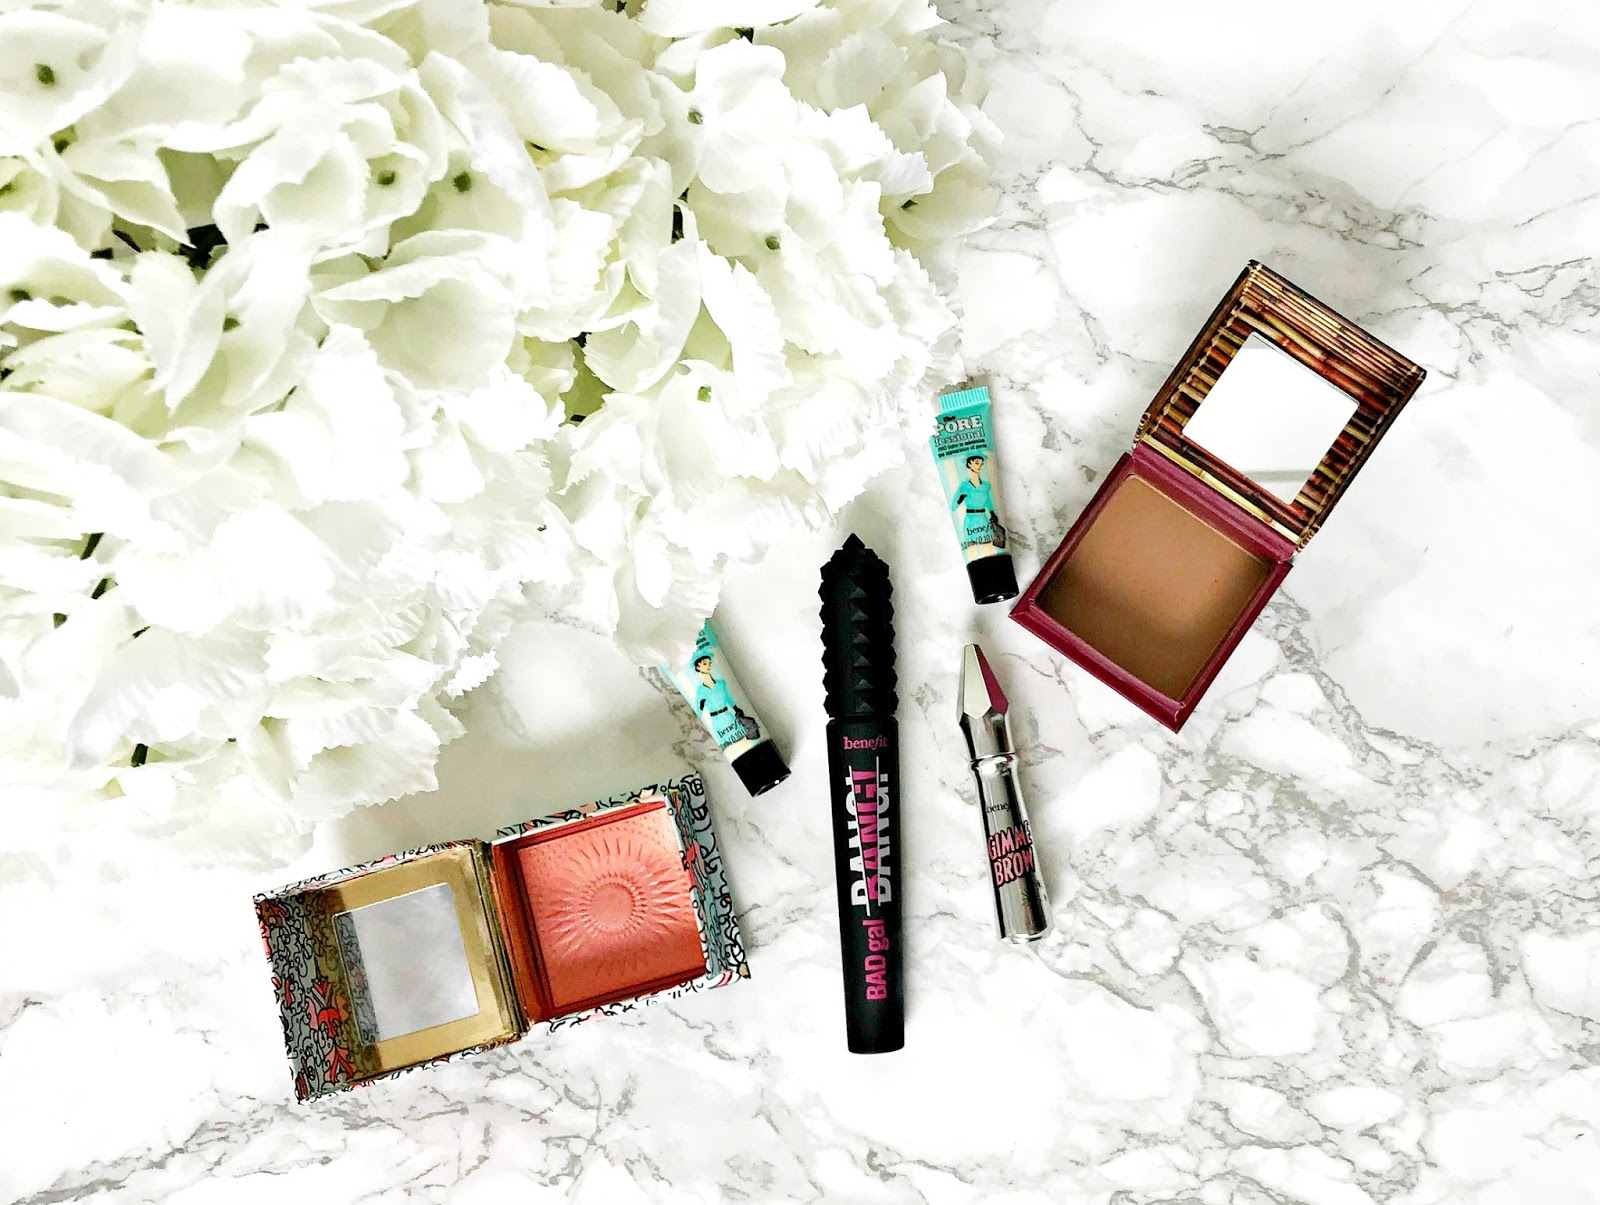 Benefit Hoola Review, Benefit Galifornia Review, Benefit BadGal Bang Review, Benefit Porefessional Review, Benefit Gimme Brow Review